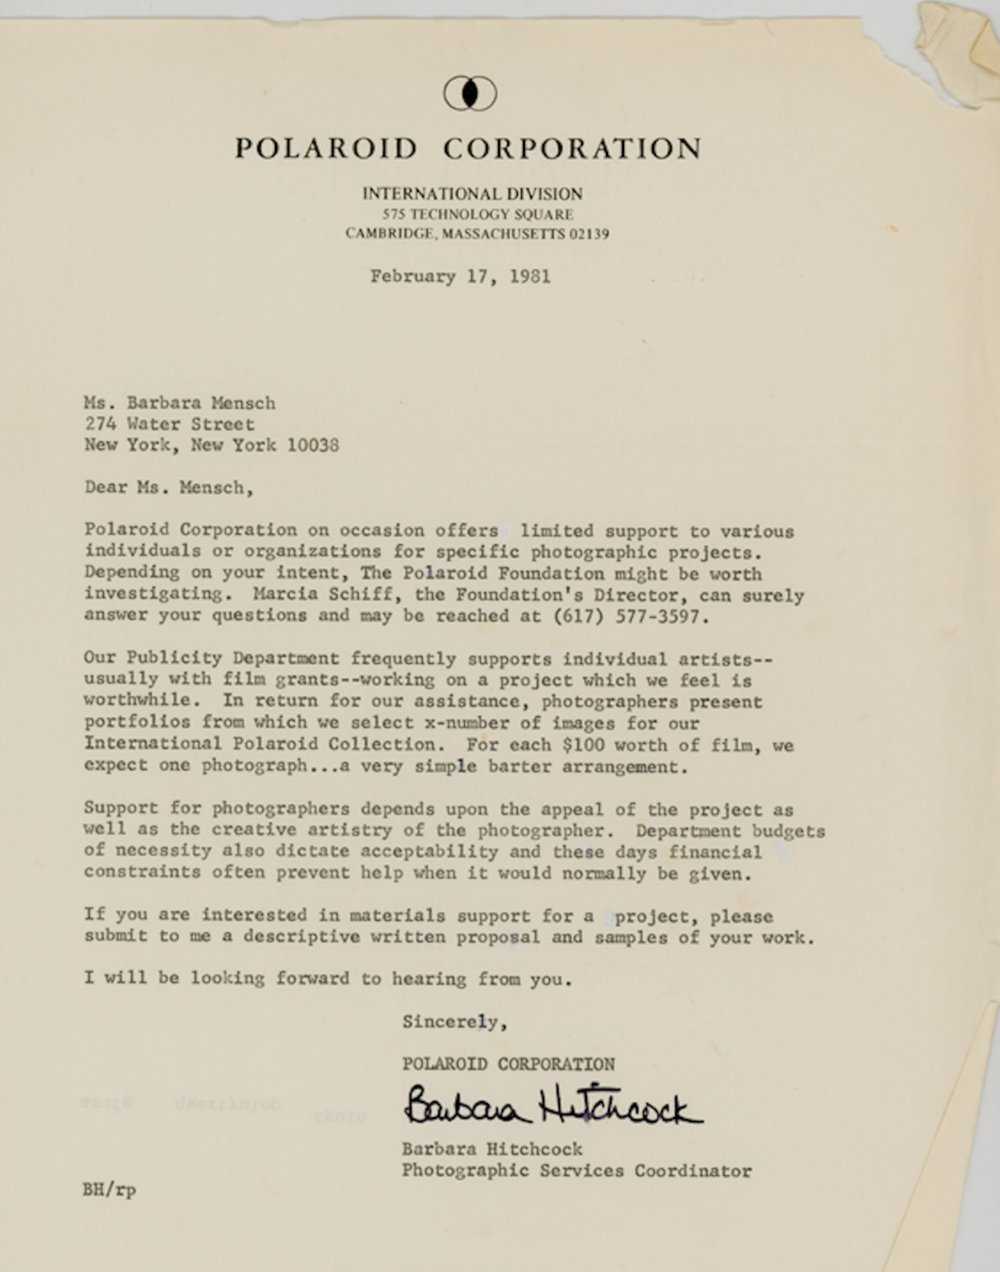 Letter from Polaroid Corporation